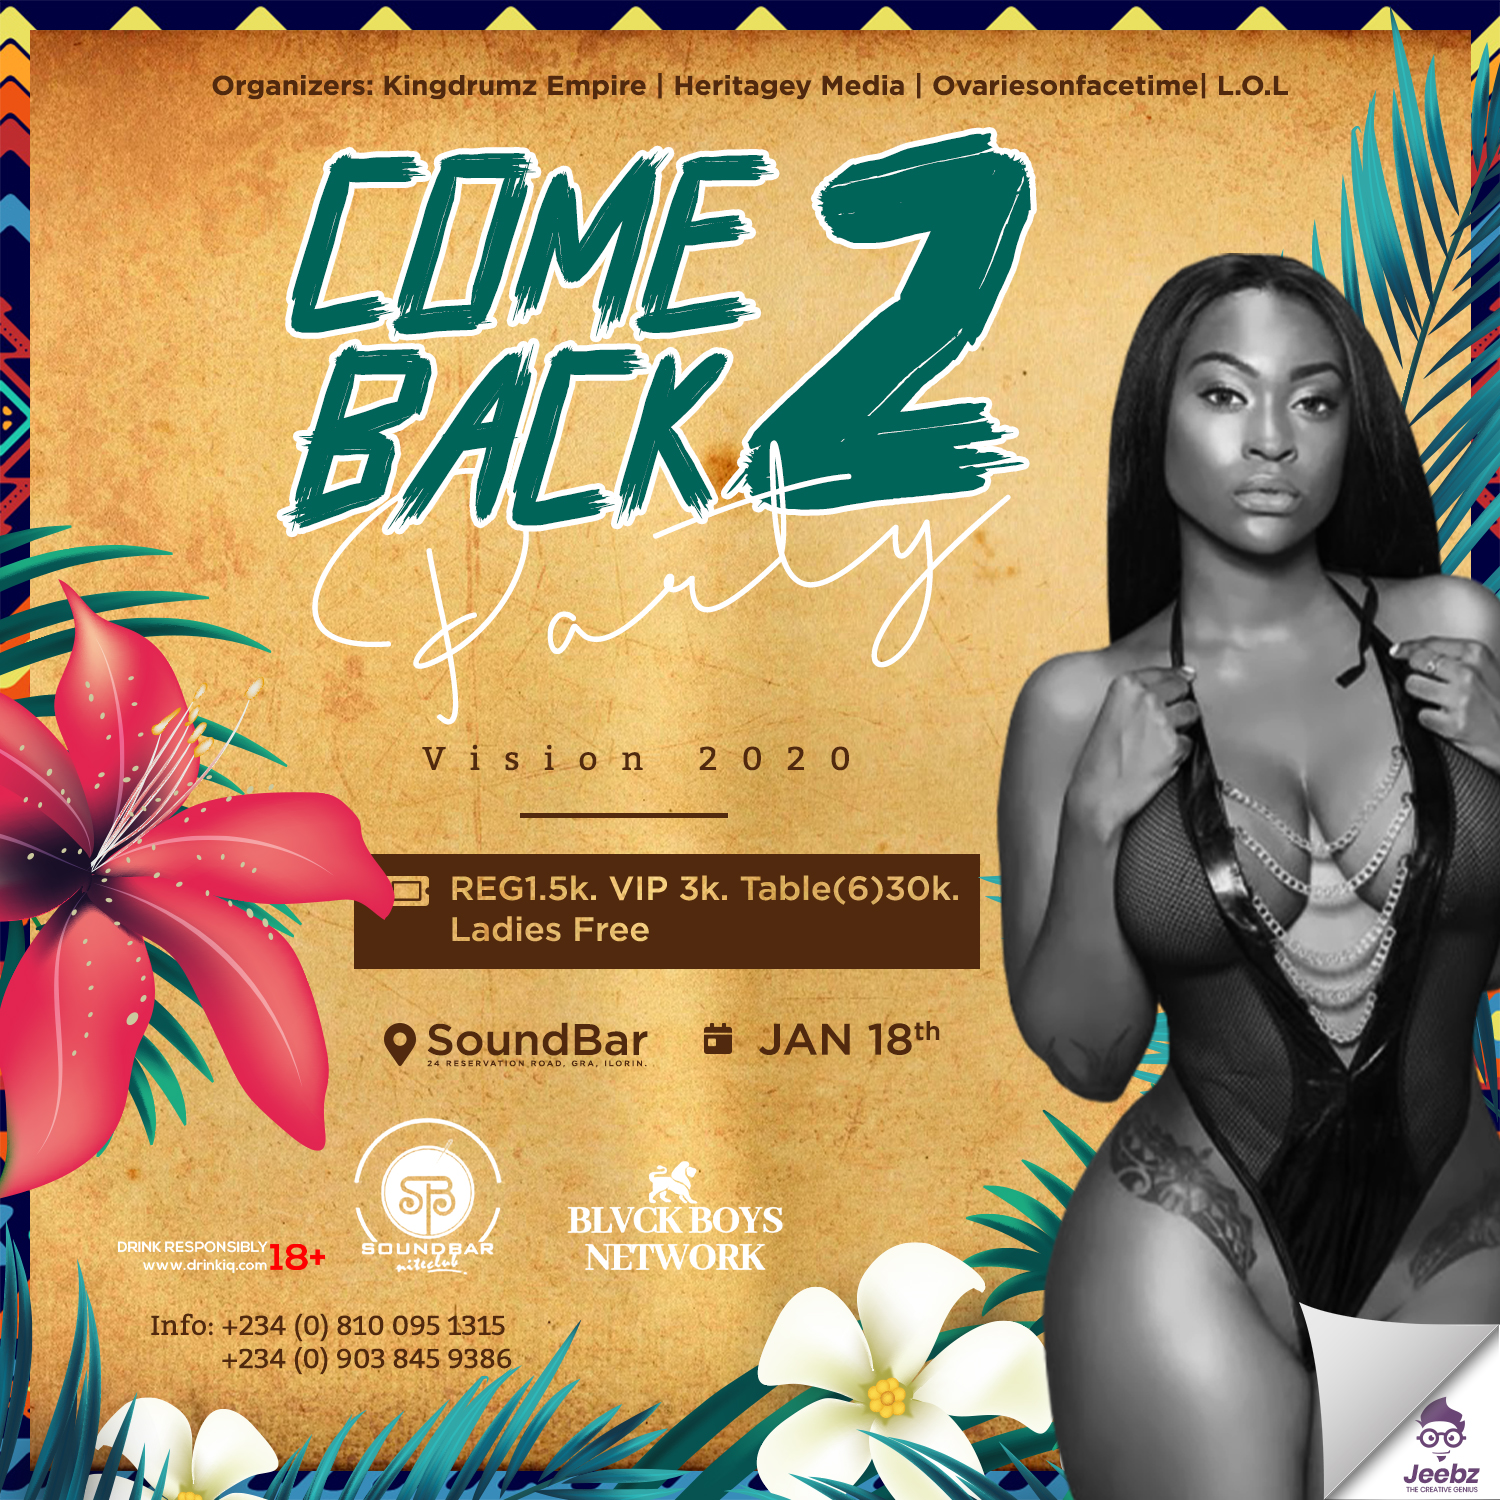 Comeback Post free event in Nigeria using tickethub.ng, buy and sell tickets to event